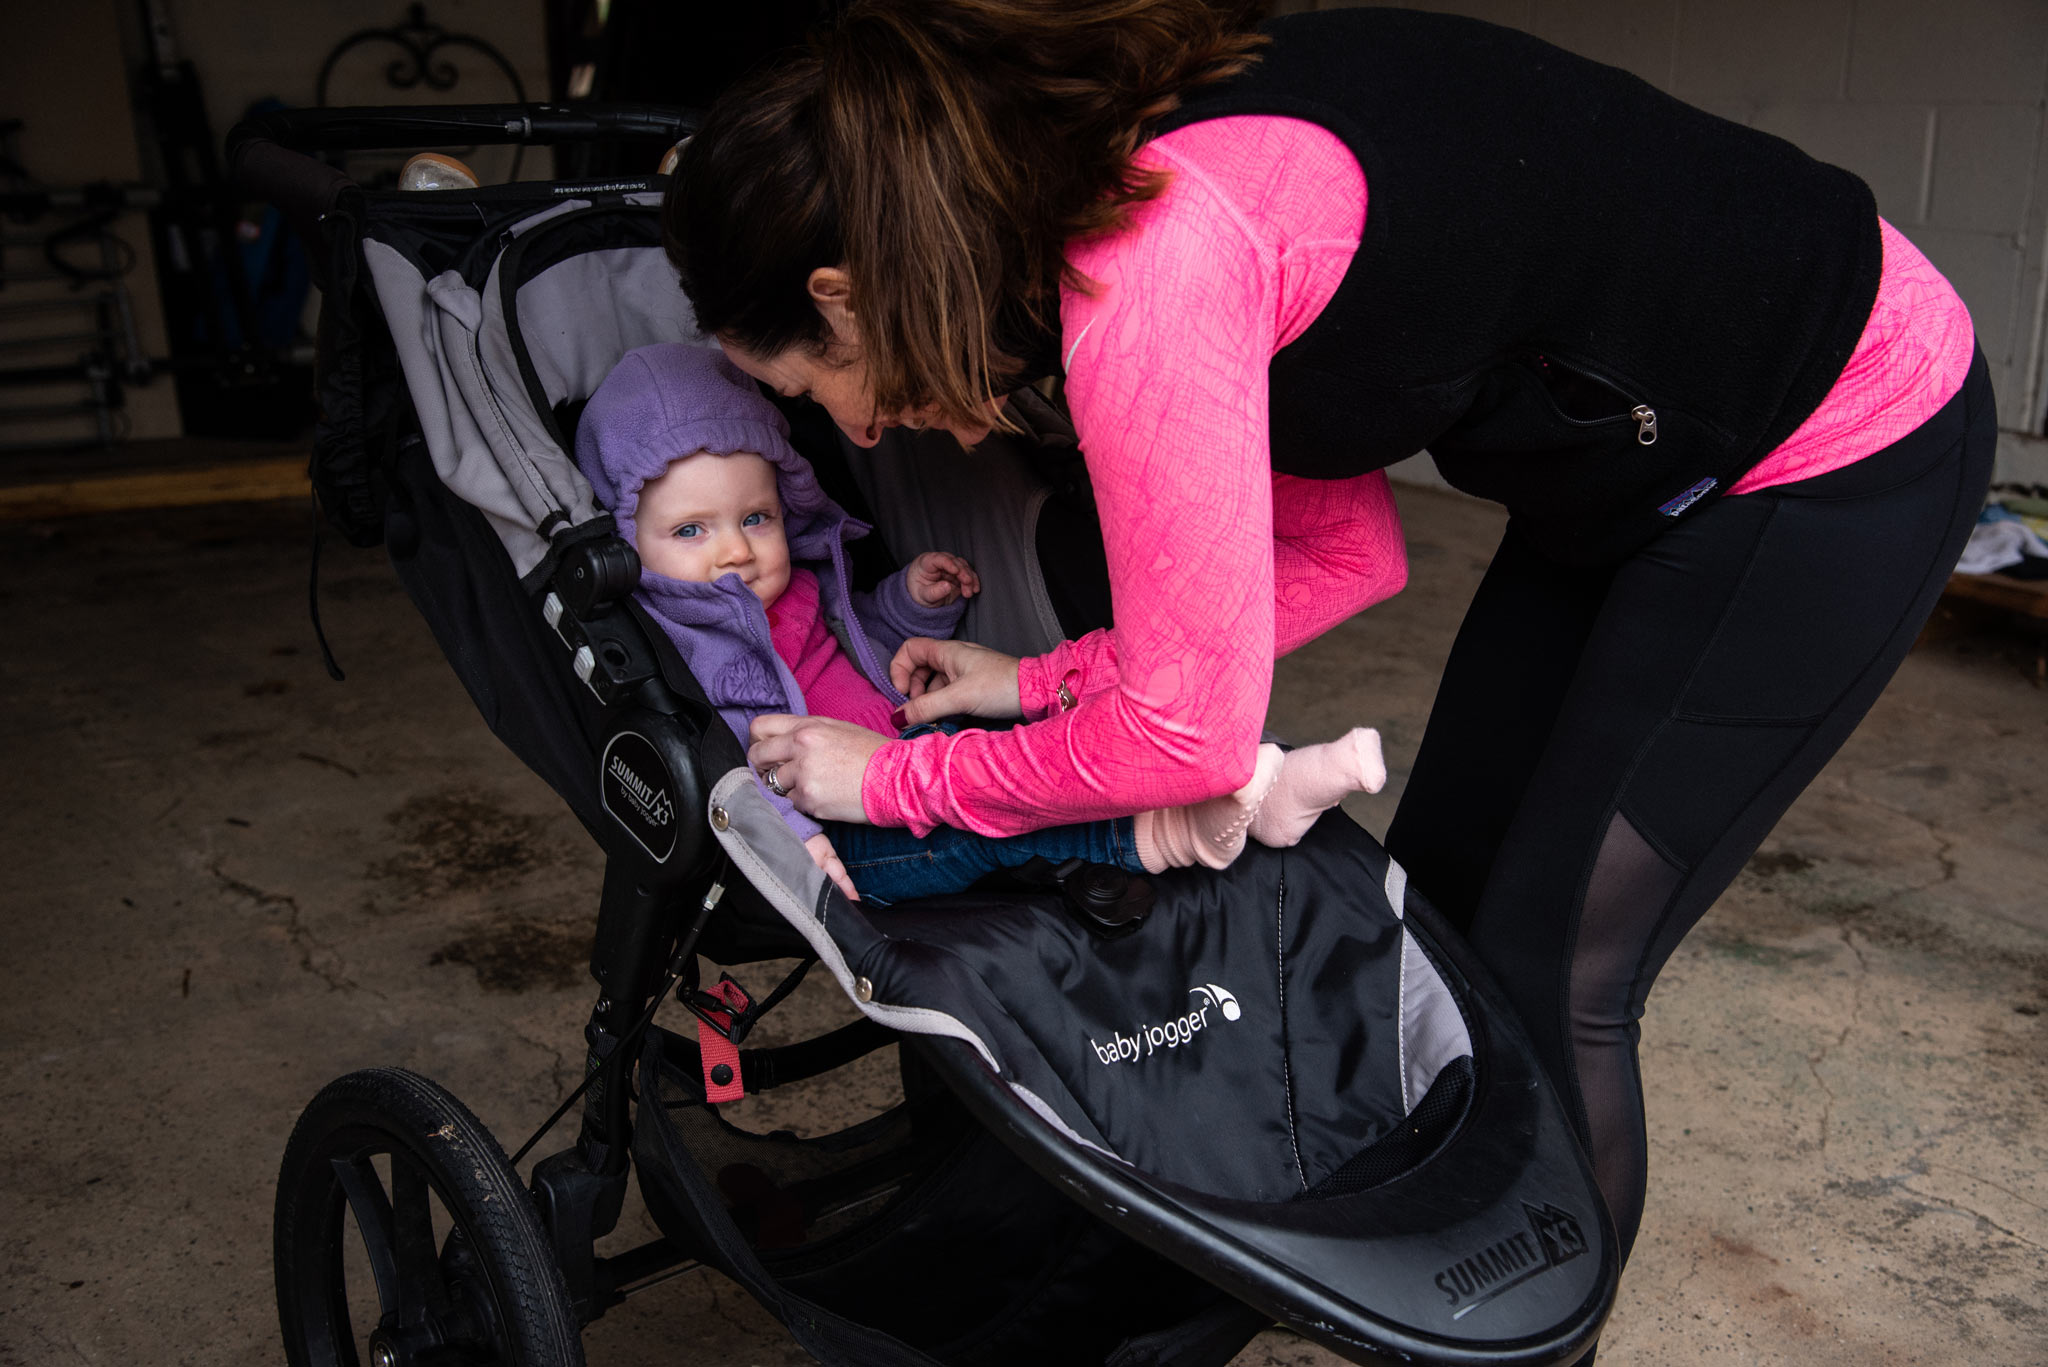 Amberlee buckles Anna in her stroller before going for a jog.